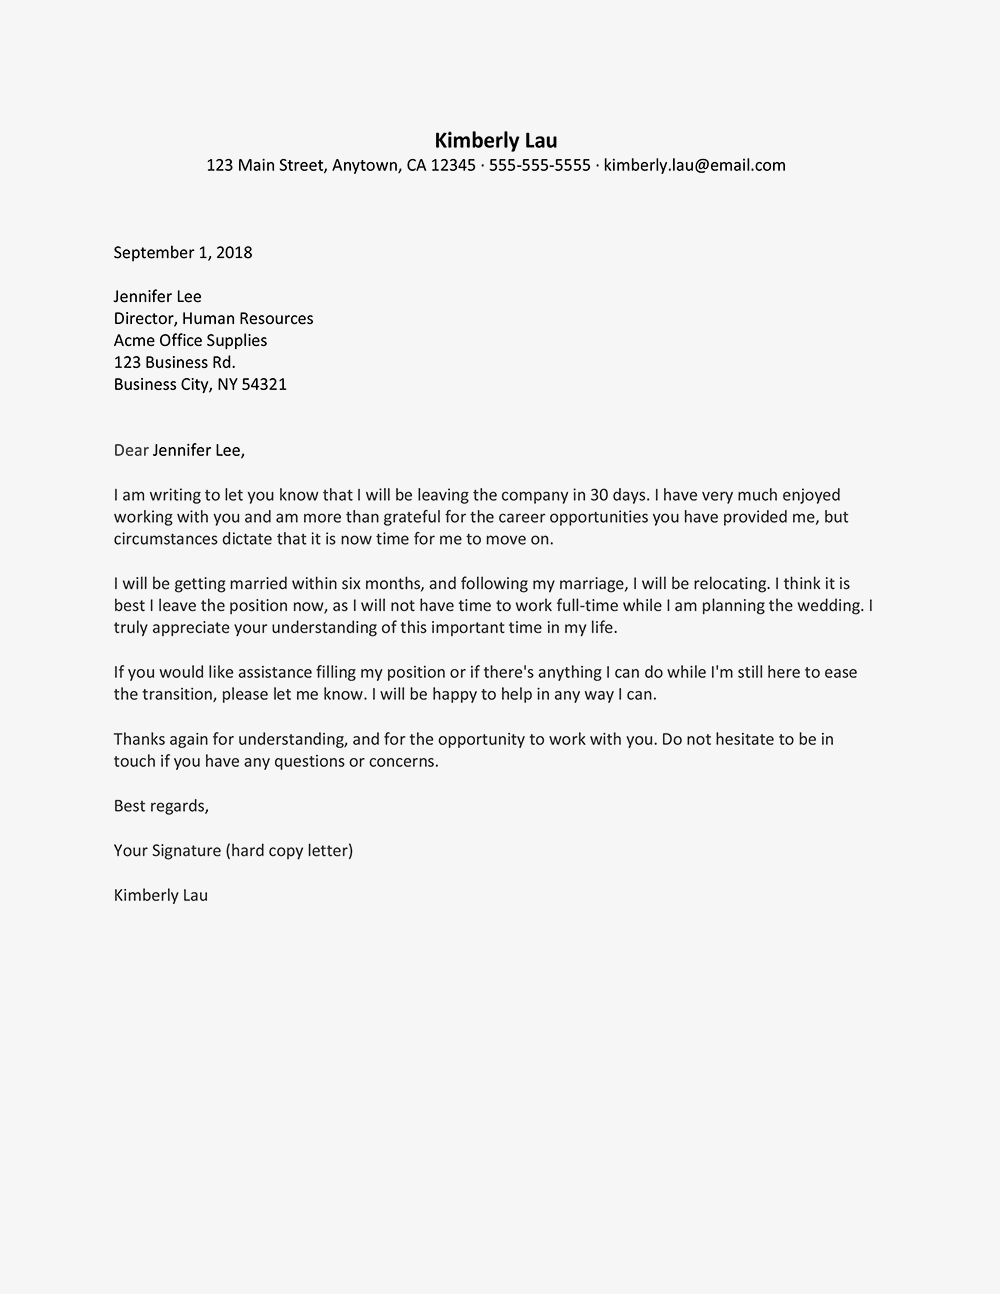 Sample Resignation Letter To Get Married